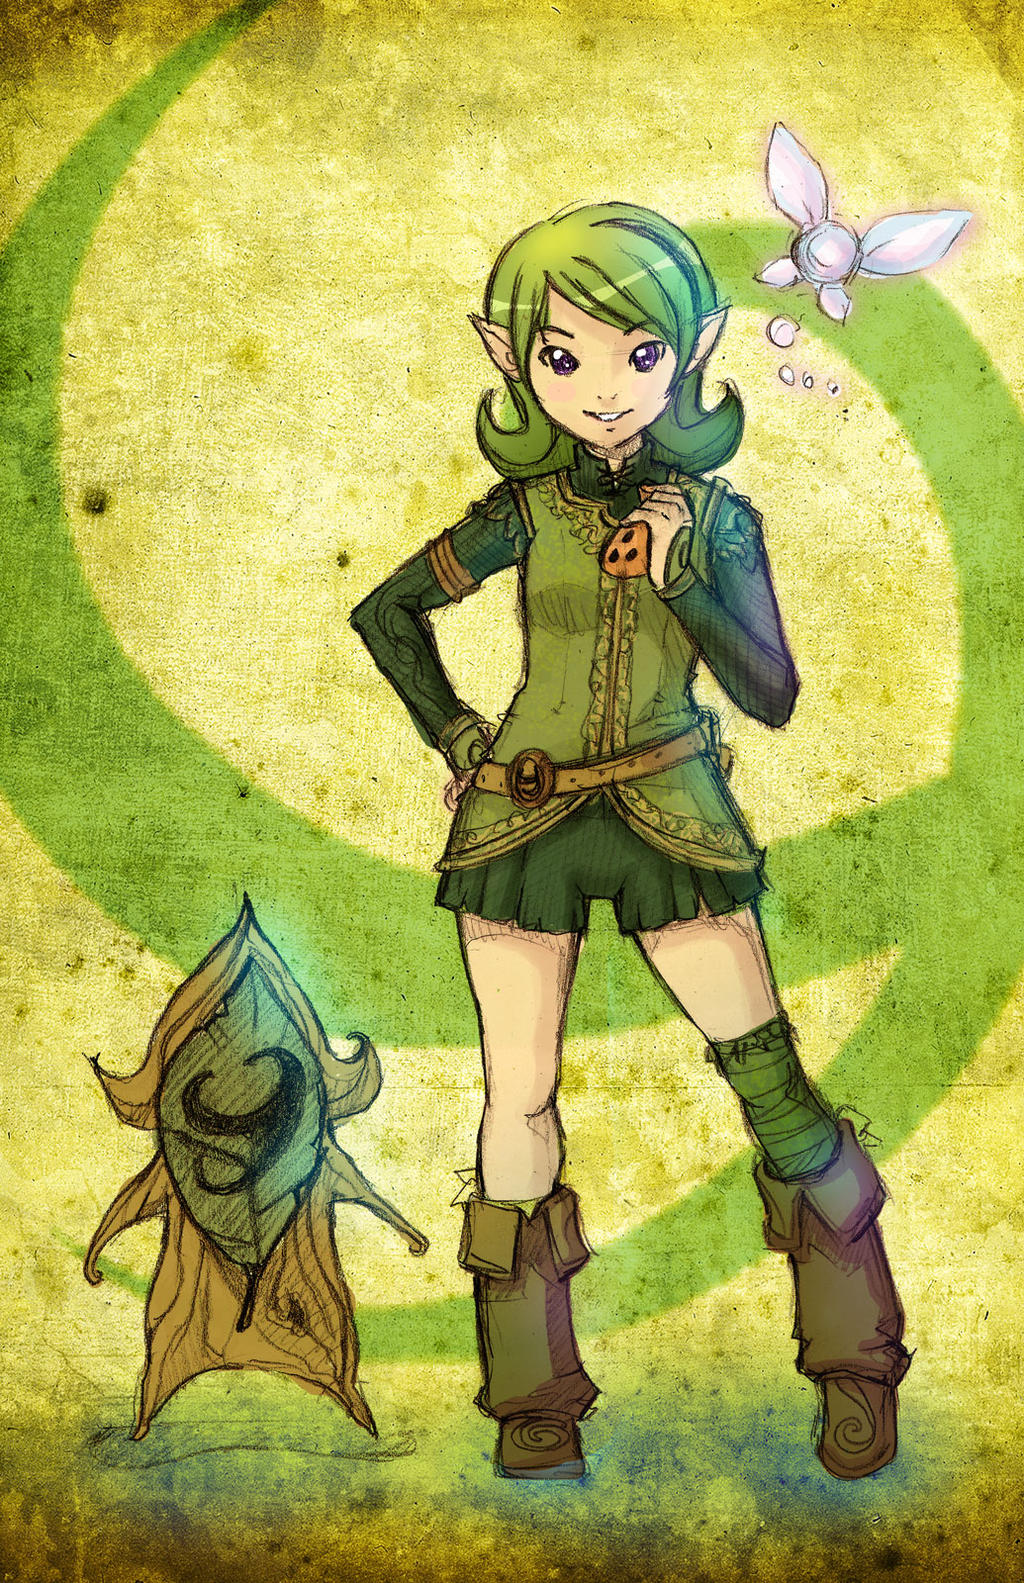 Little Saria by RaySama